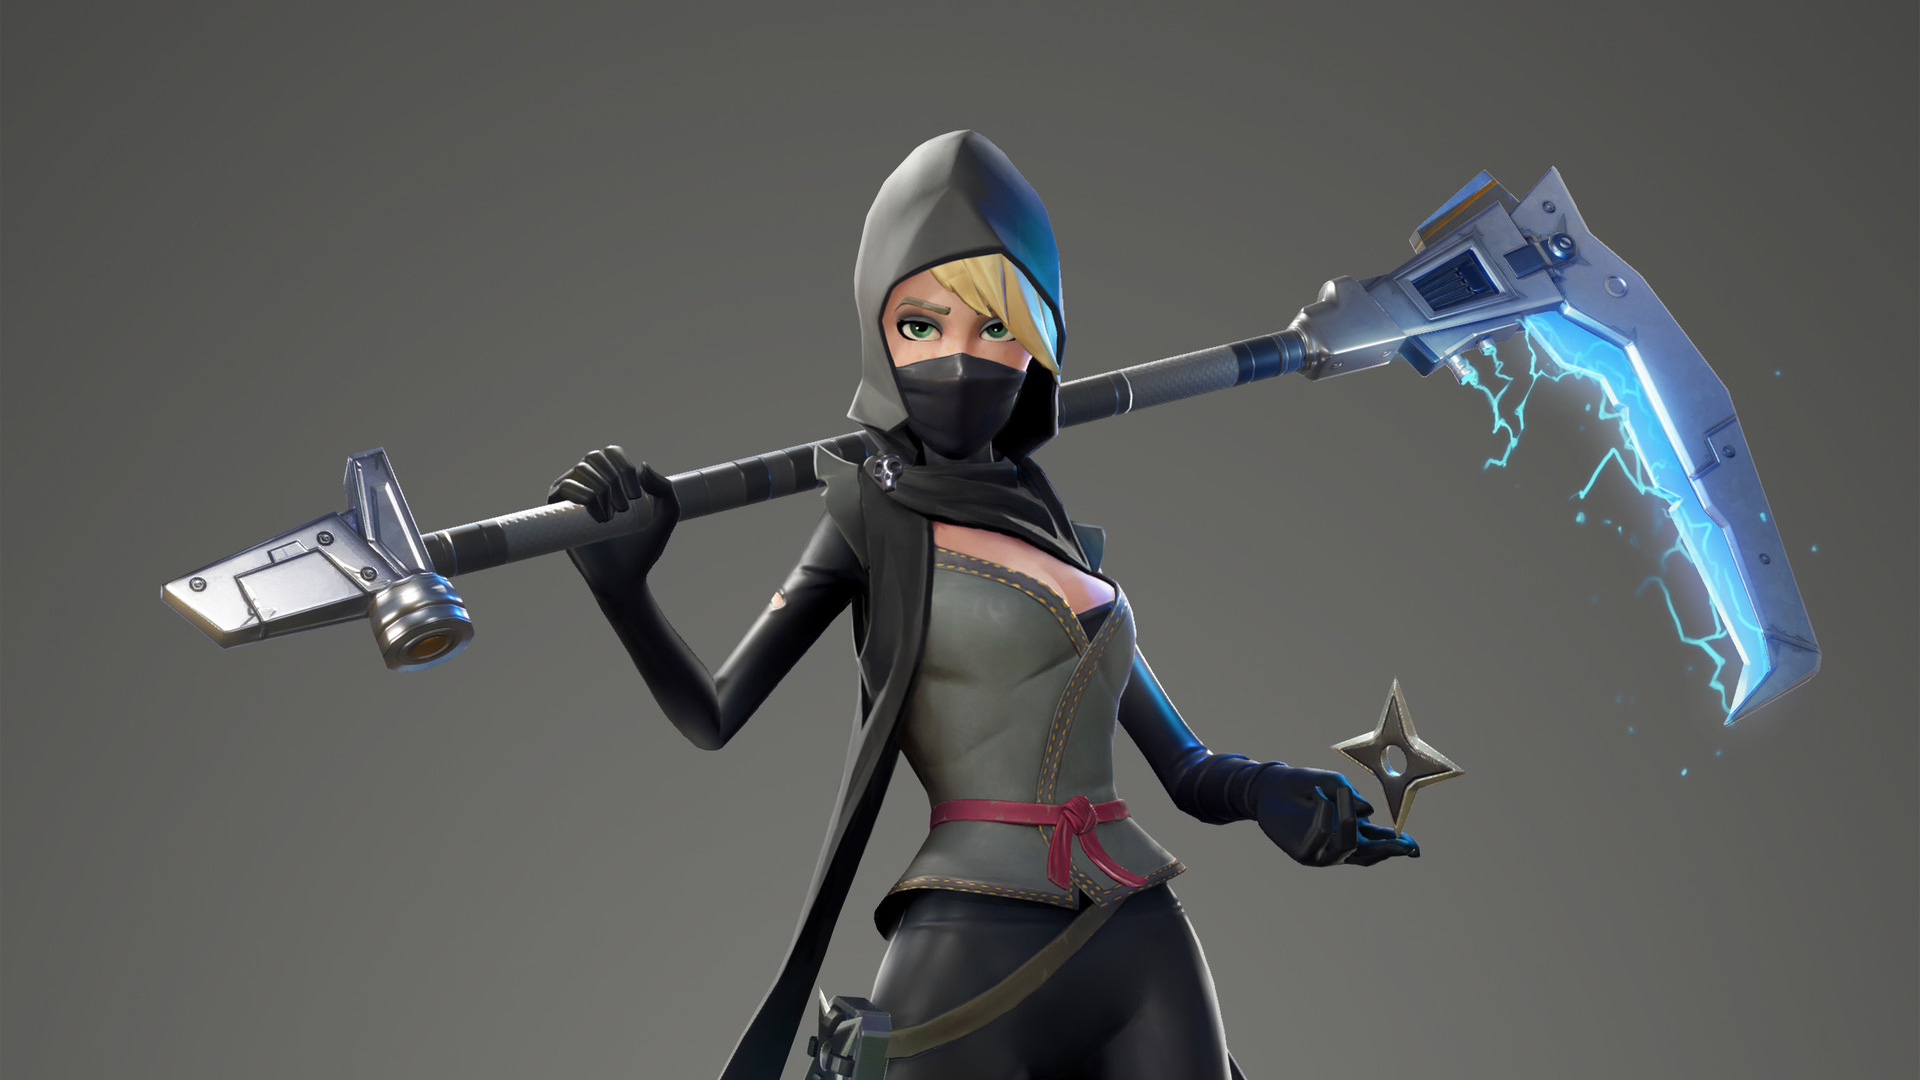 Fortnite Female Ninja Hd Games 4k Wallpapers Images Backgrounds